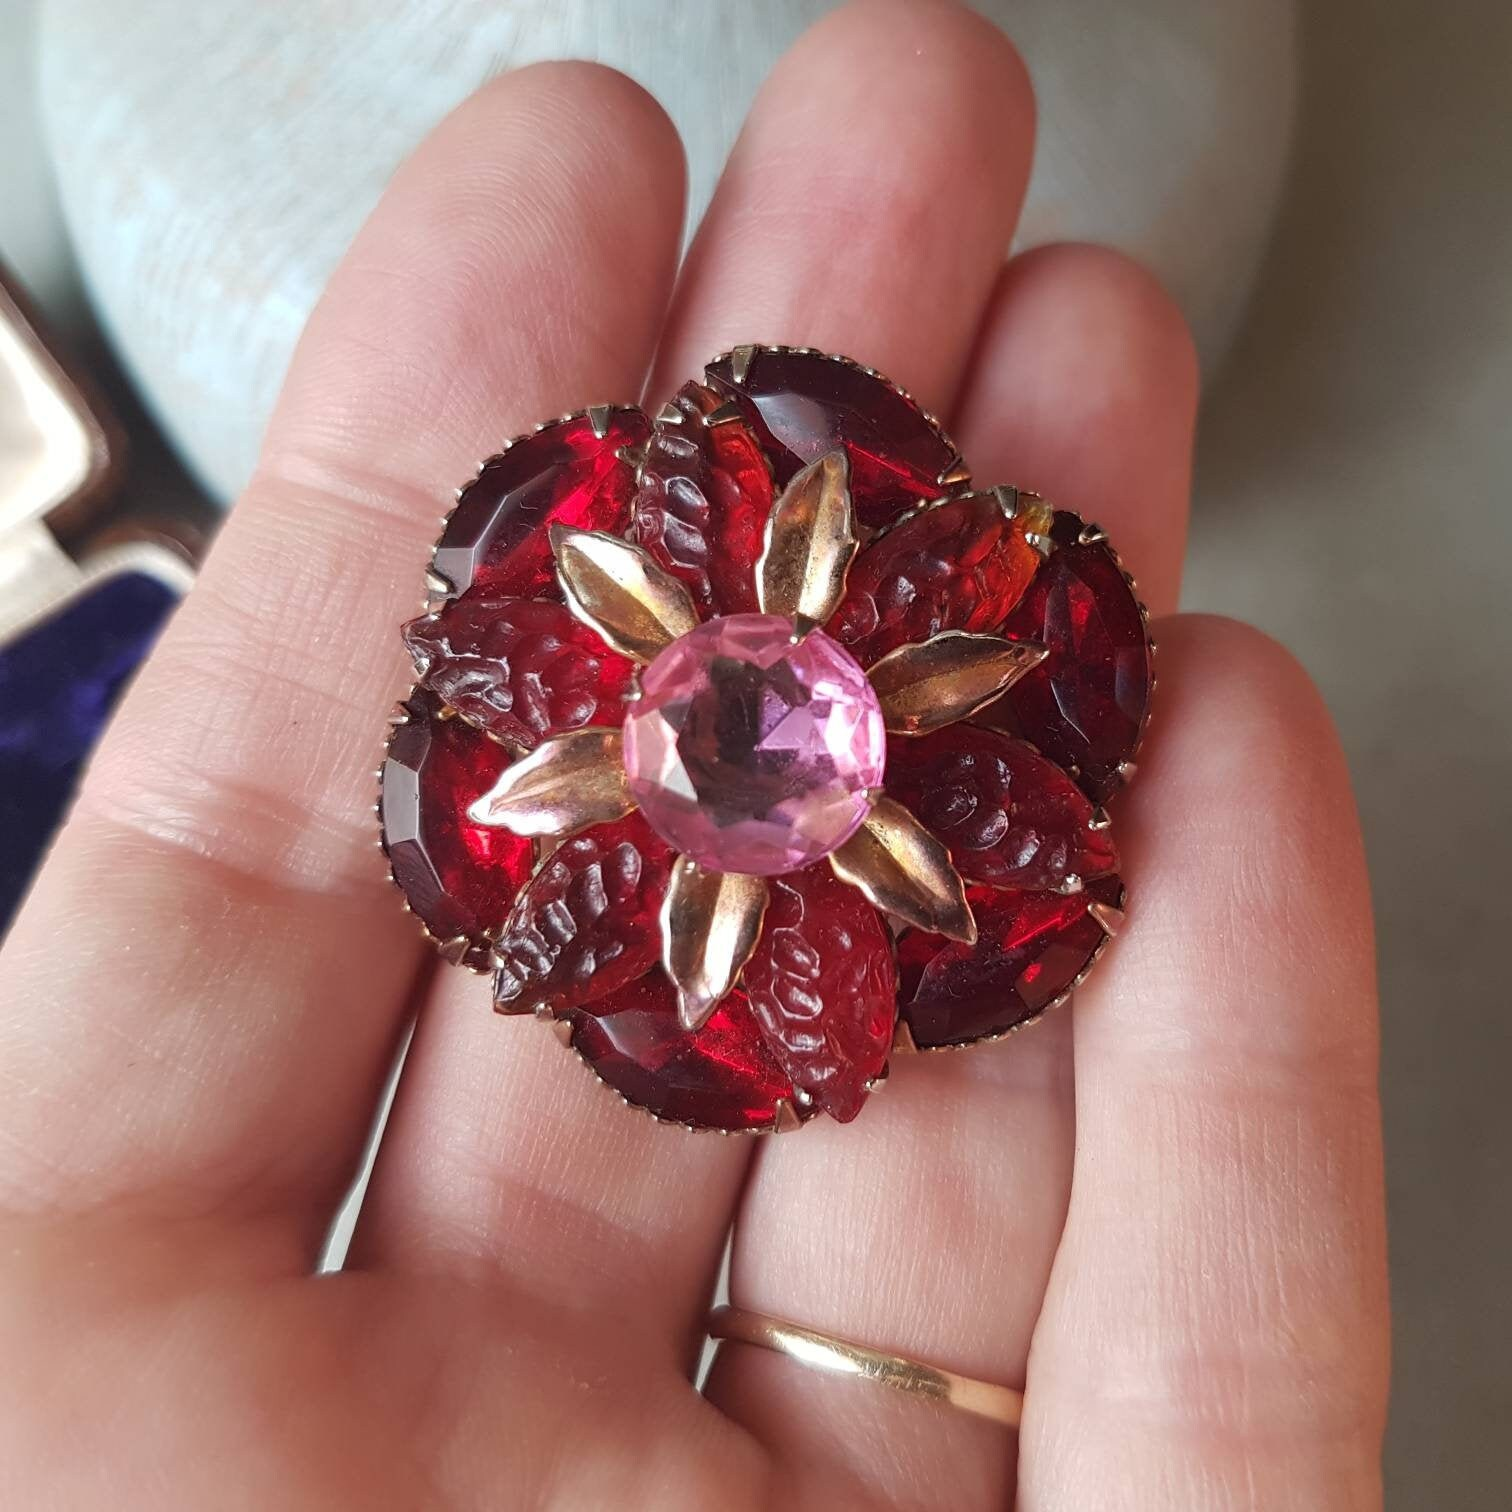 Stunning Vintage Old World Charm Floral Brooch; Striking Pink & Red Crystal Rhinestones; Gold Tones; Perfect Cocktail Party Bling Glam